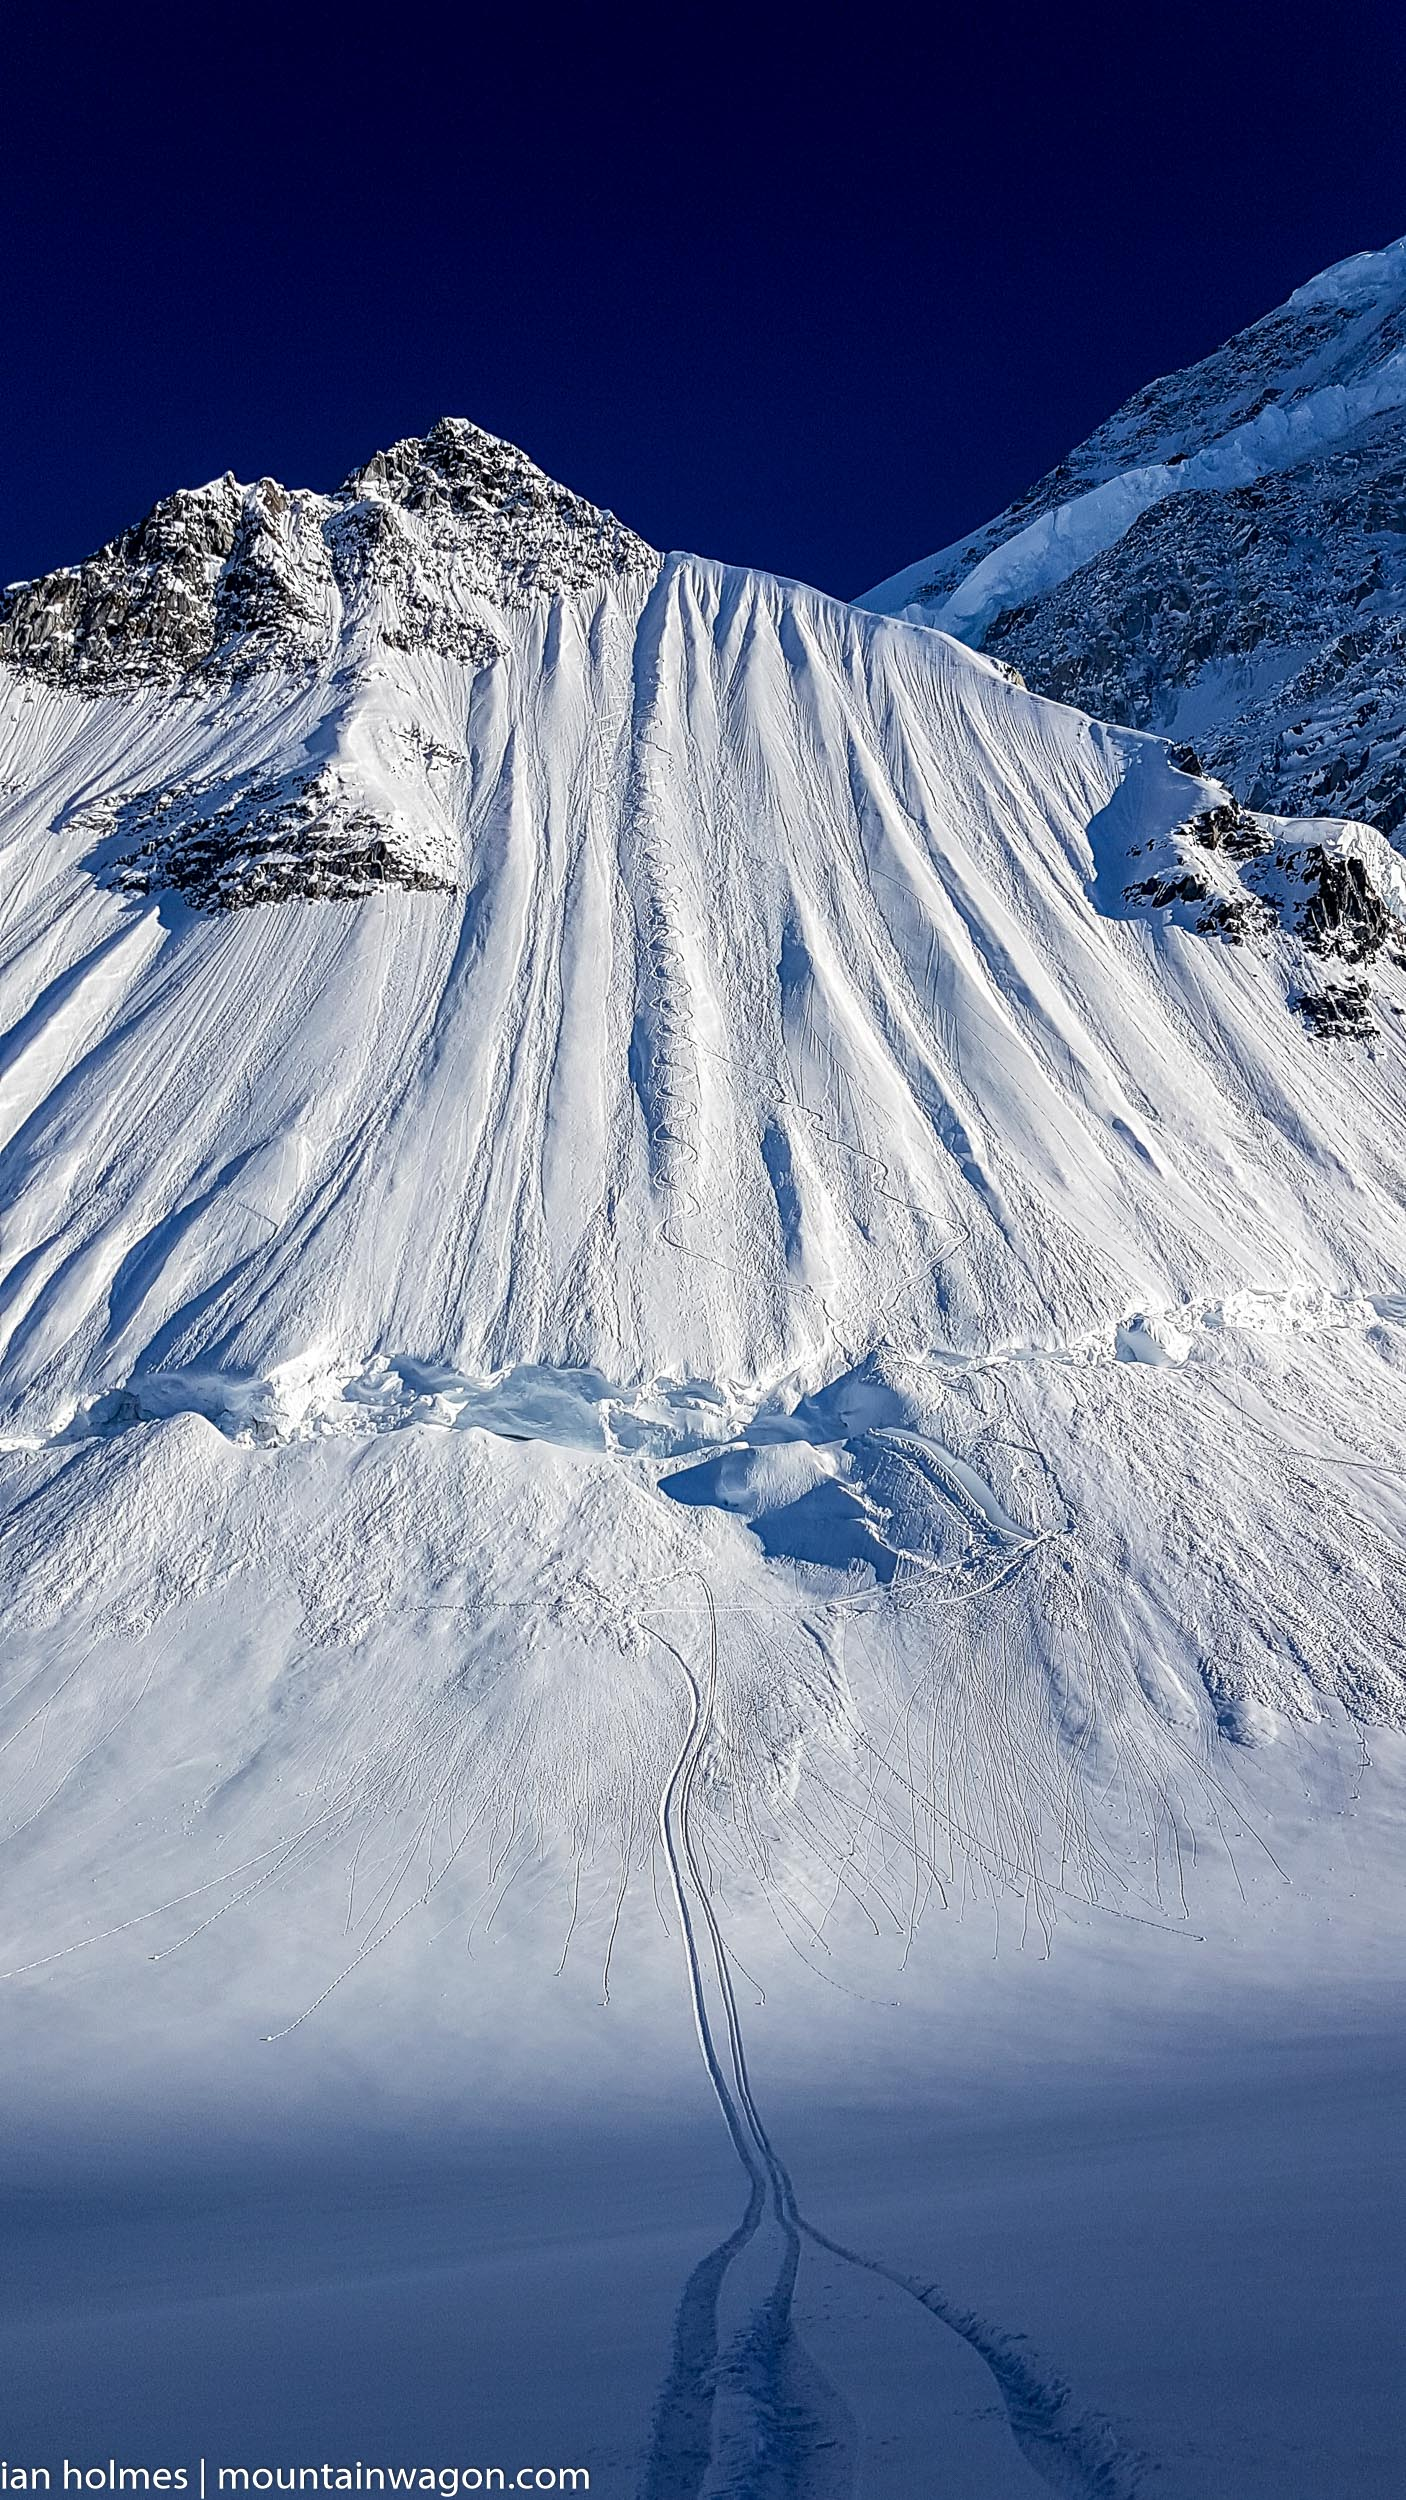 And they call that 'not riding it nicely' - looks like incredible turns to me...